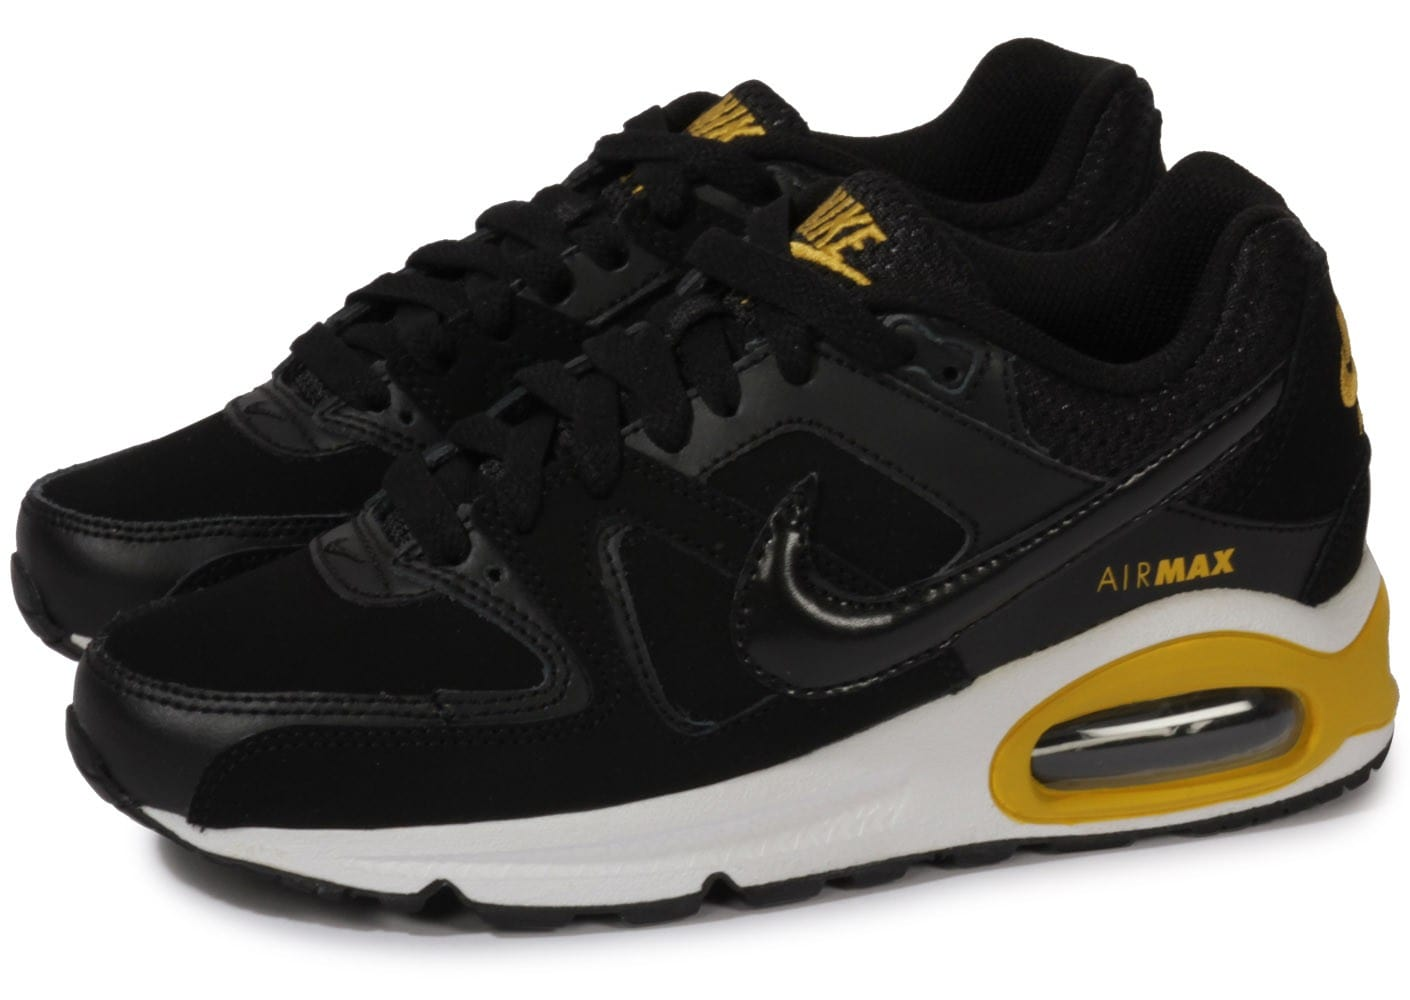 low priced c5ac4 d7789 Chaussures Noir Chausport Chaussures Max Nike Or Junior Command Air  ZxwvwYqTa